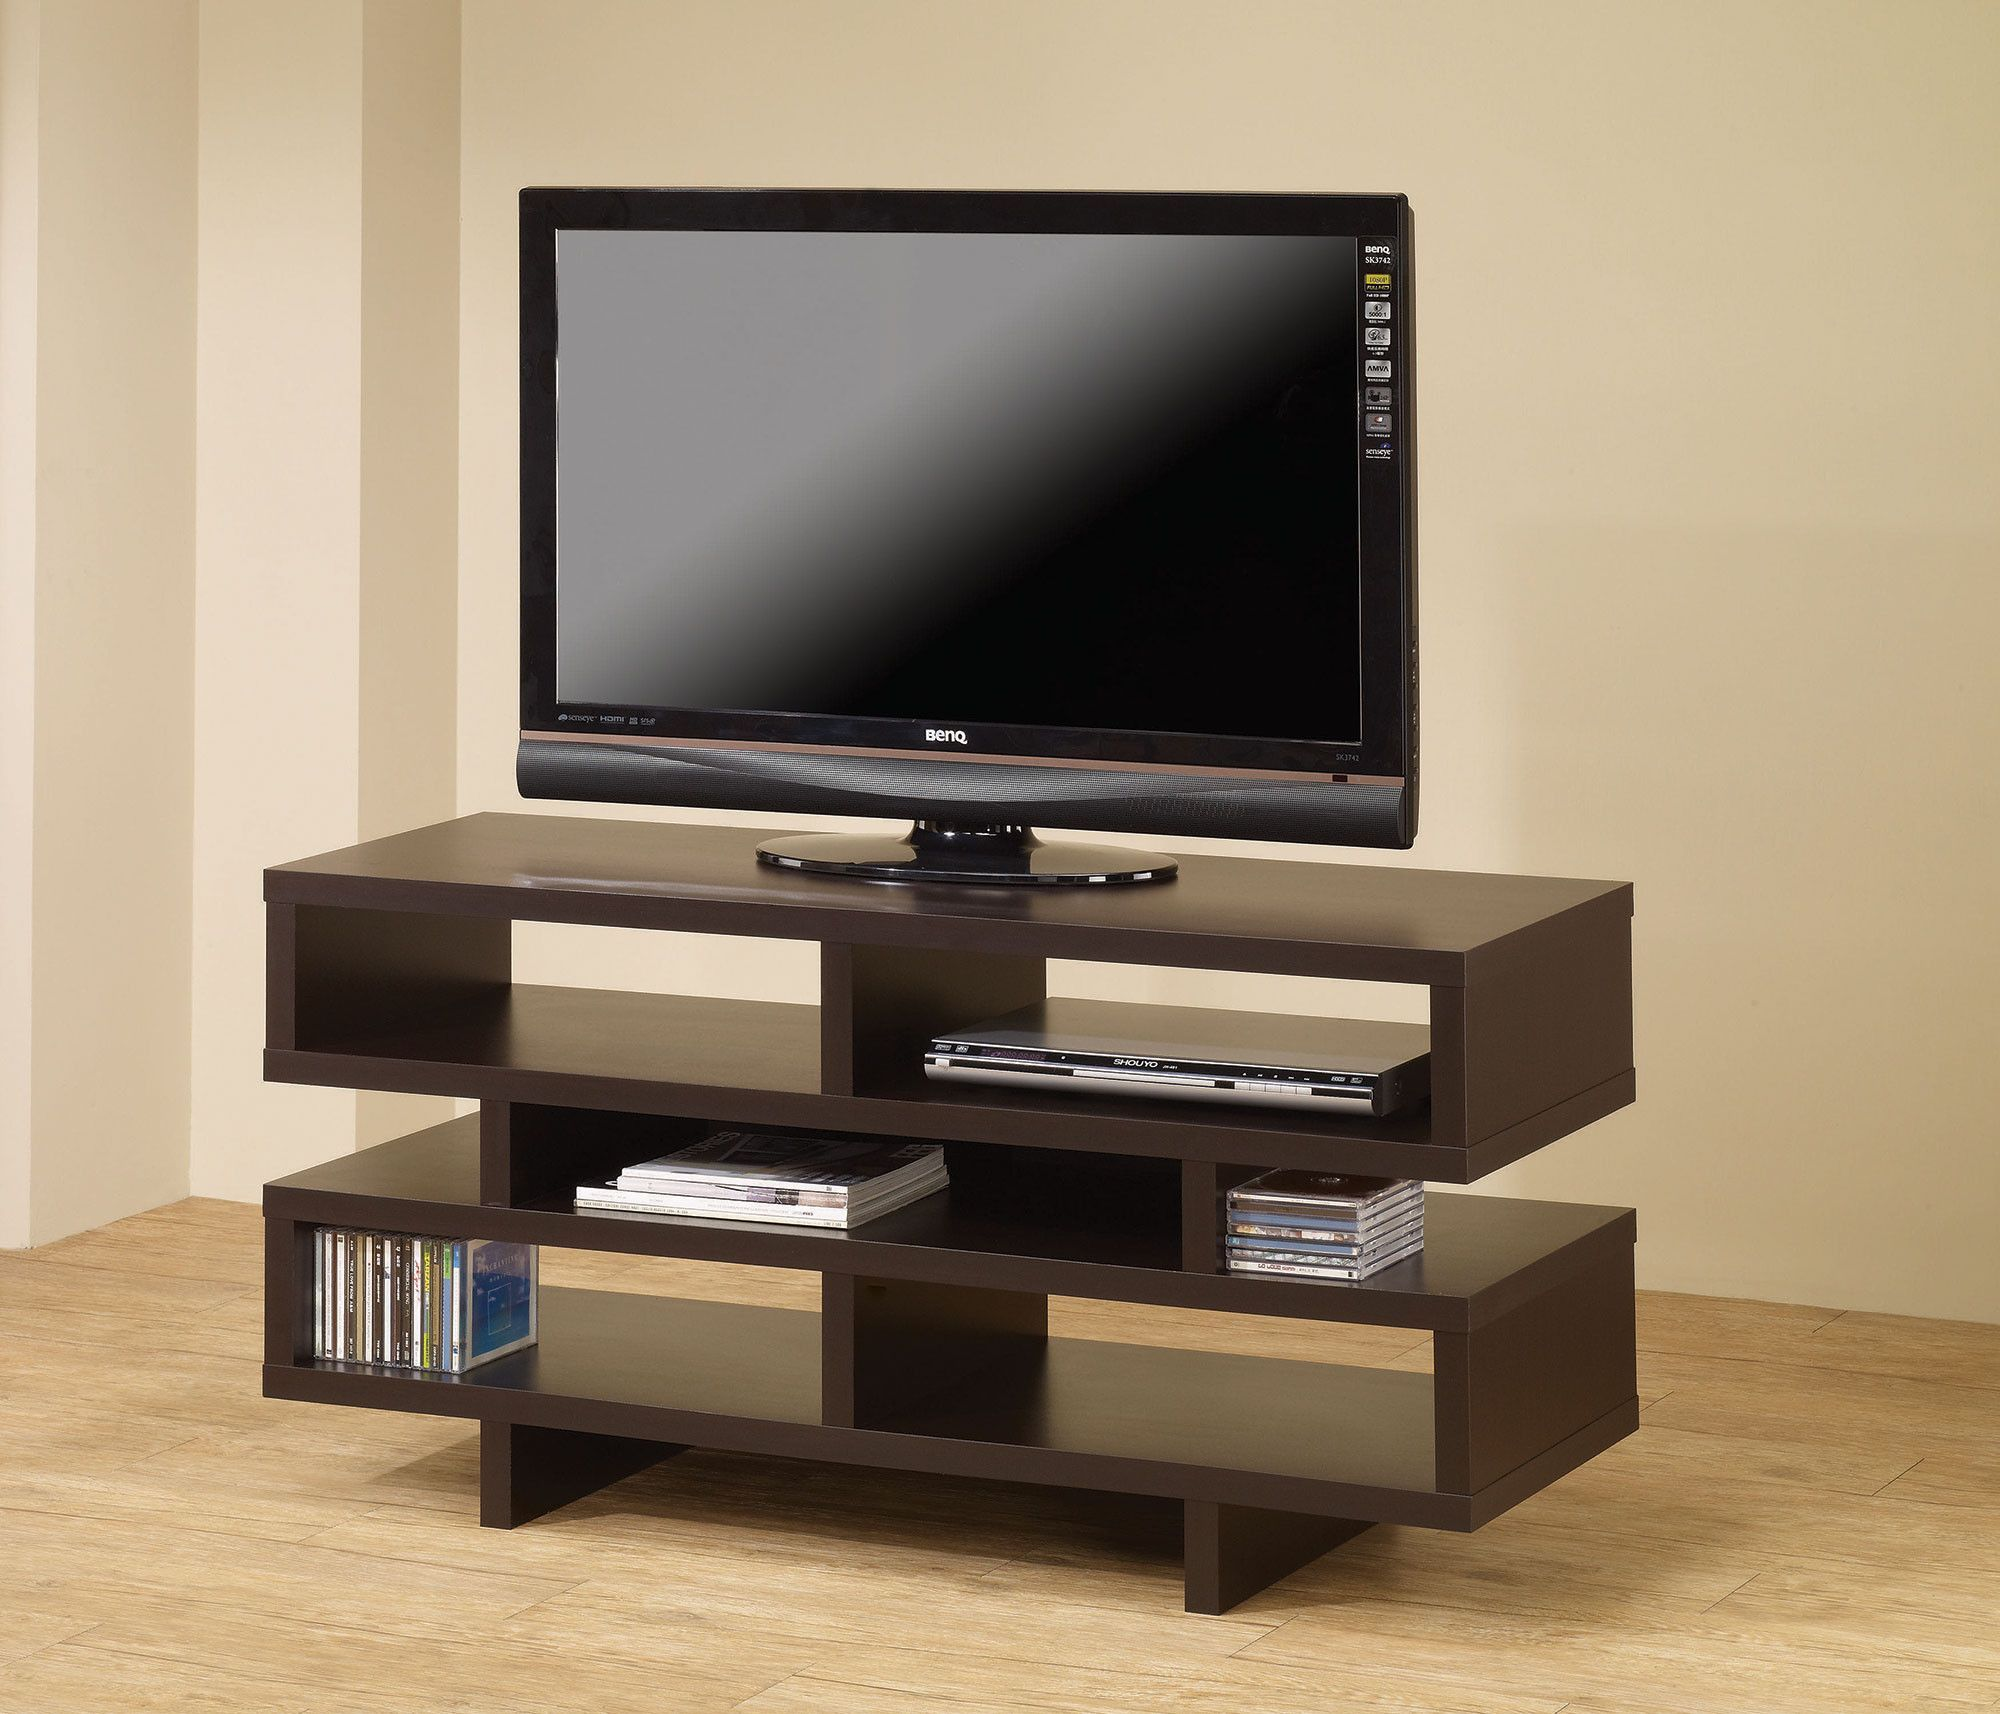 Atlantic Furniture Discount In Pawtucket, RI, Carrying A Huge Selection Of  Brand Name Entertainment Centers.